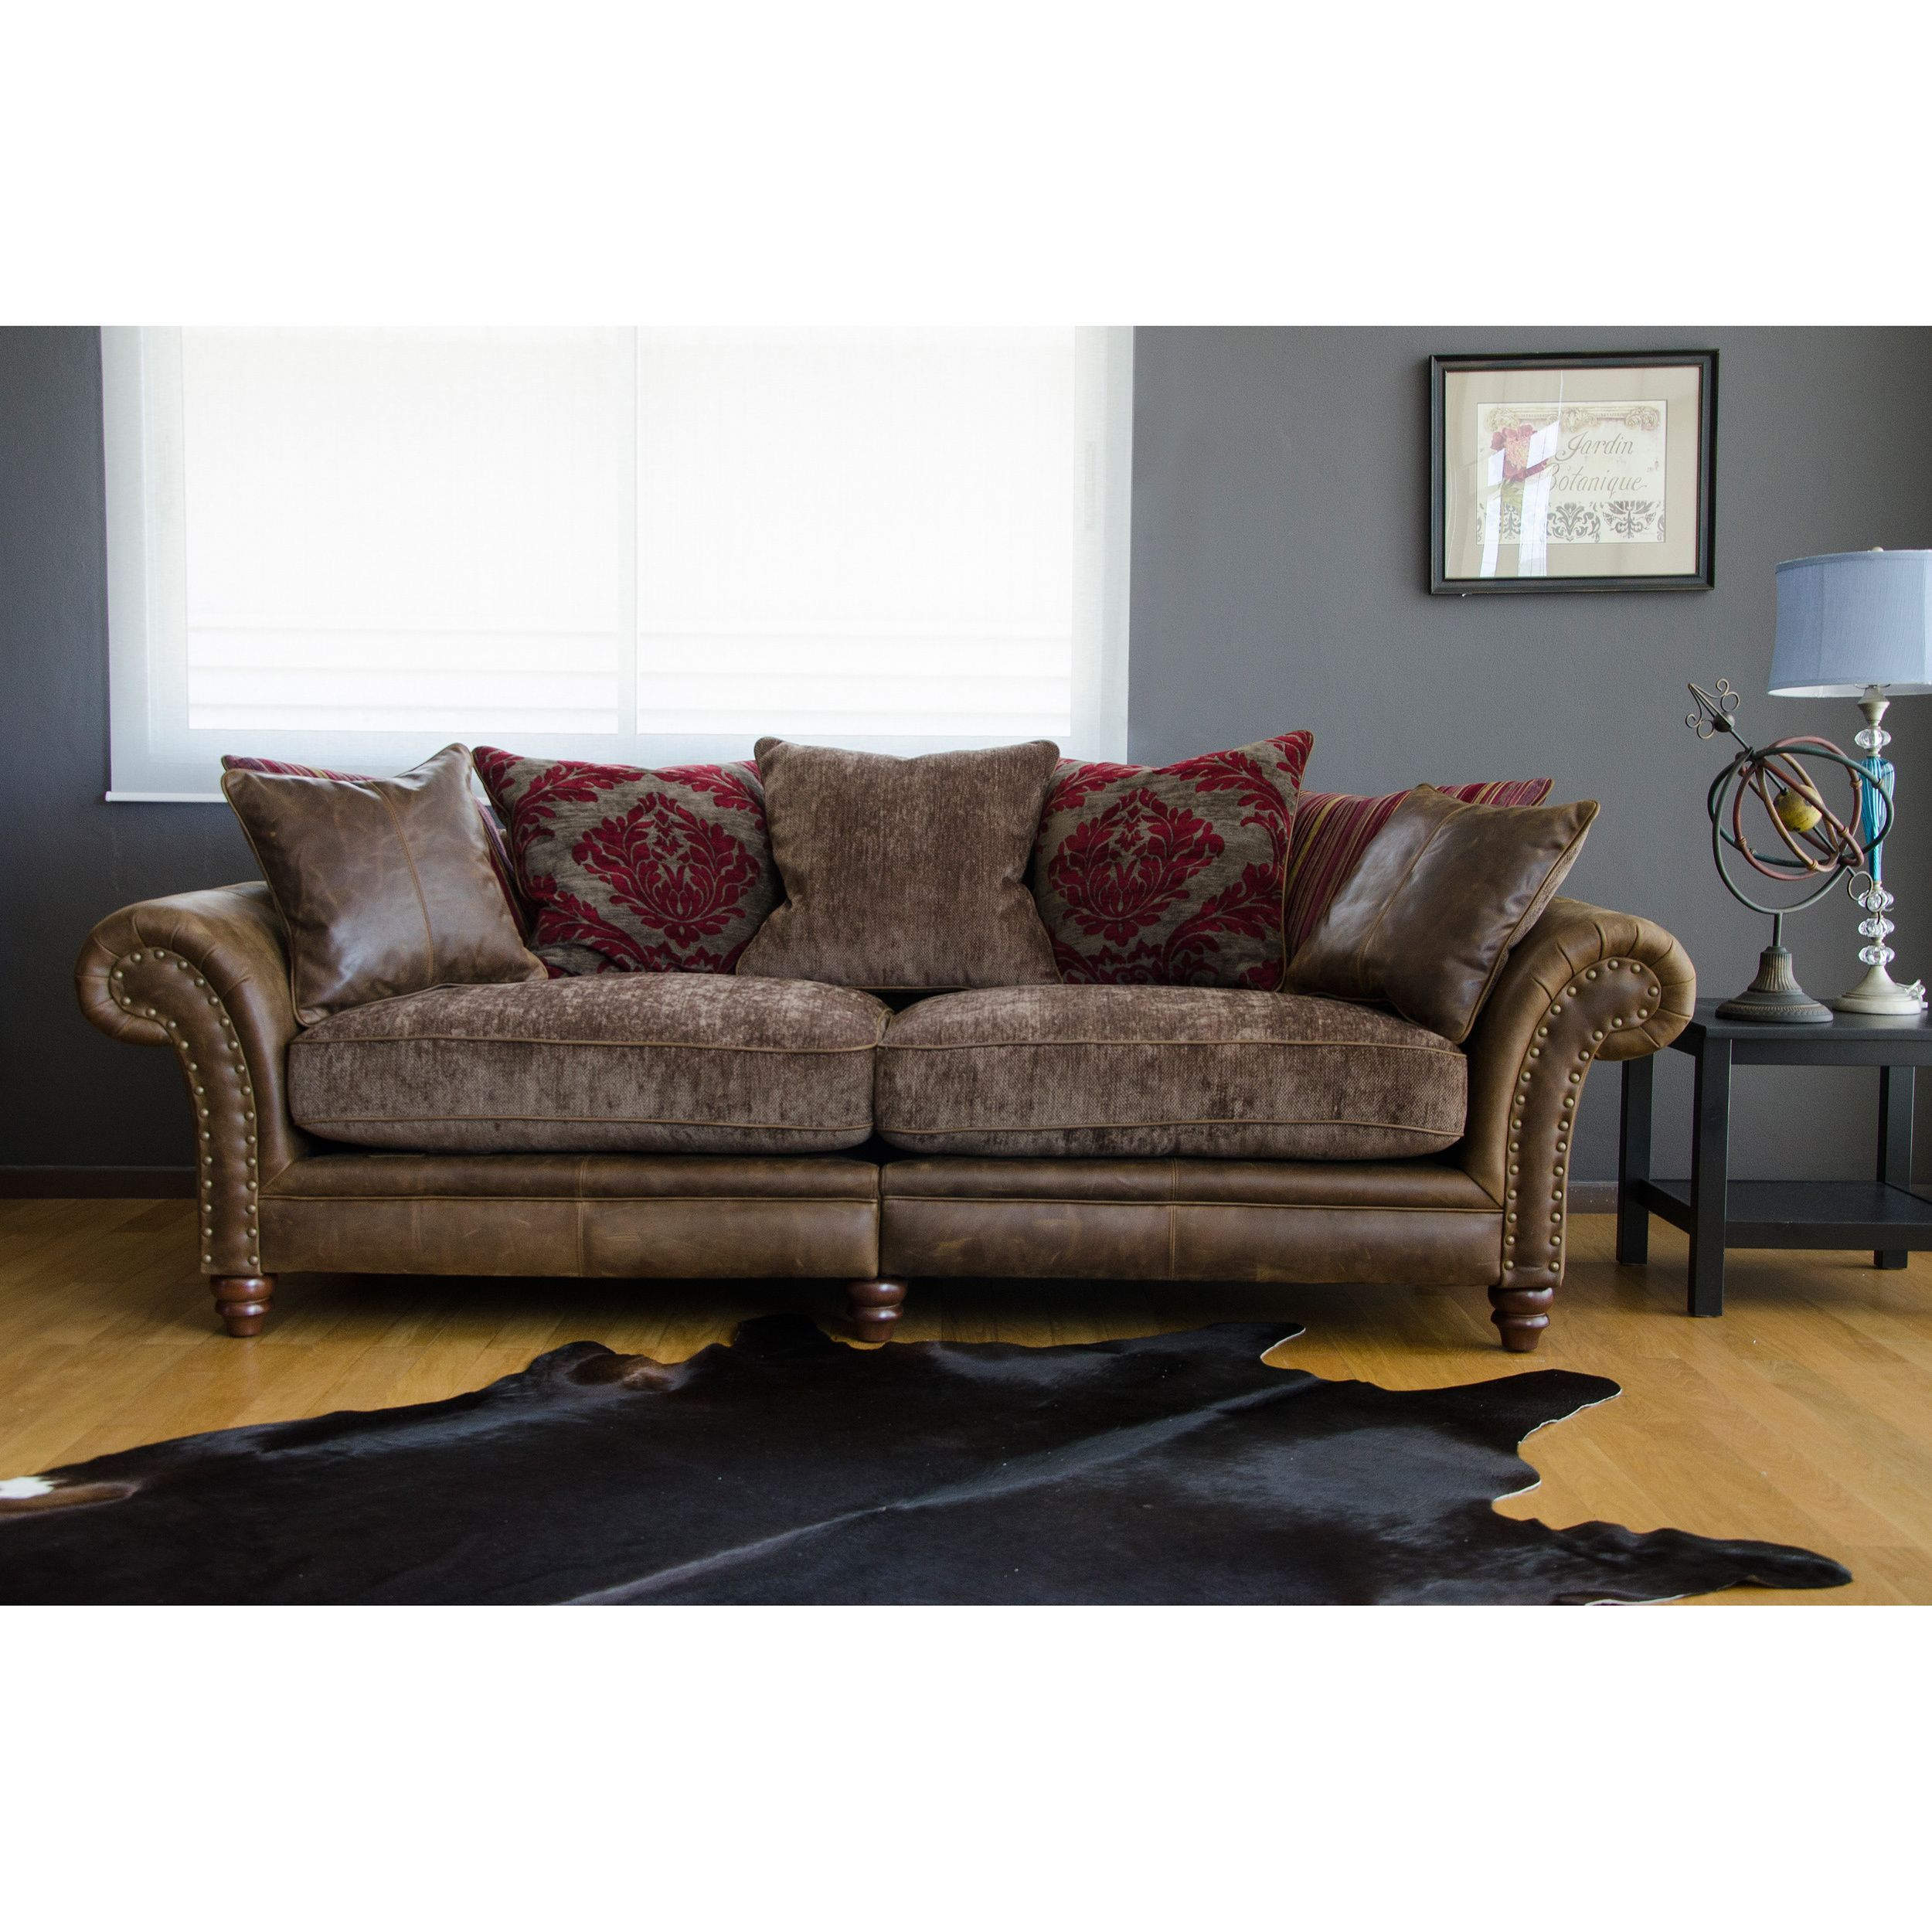 This Hudson leather sofa features deep seating and soft feather ...